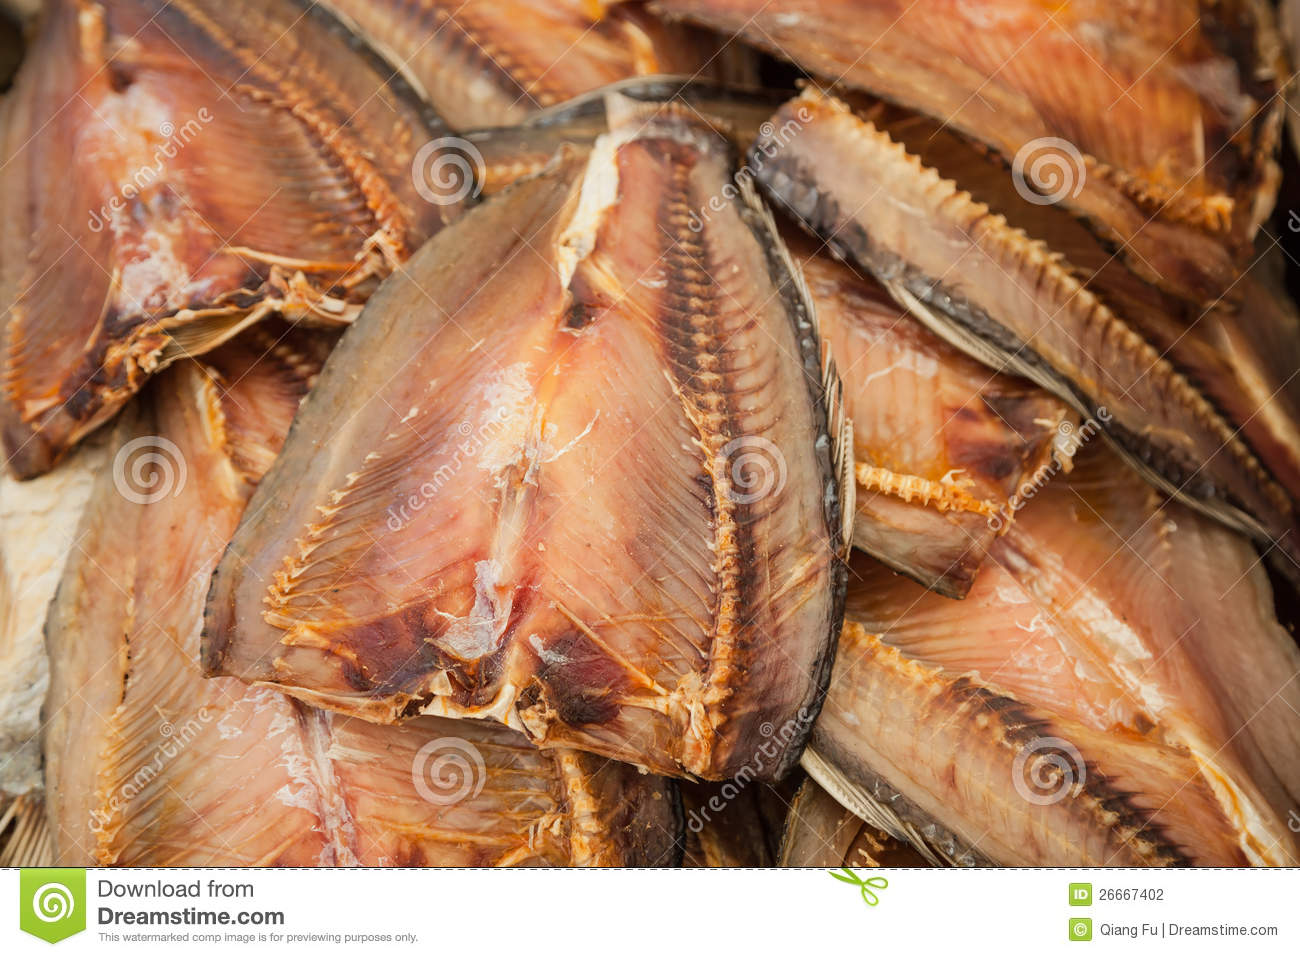 dried fish clipart 9 | Clipart Station for Dried Fish Clipart  76uhy